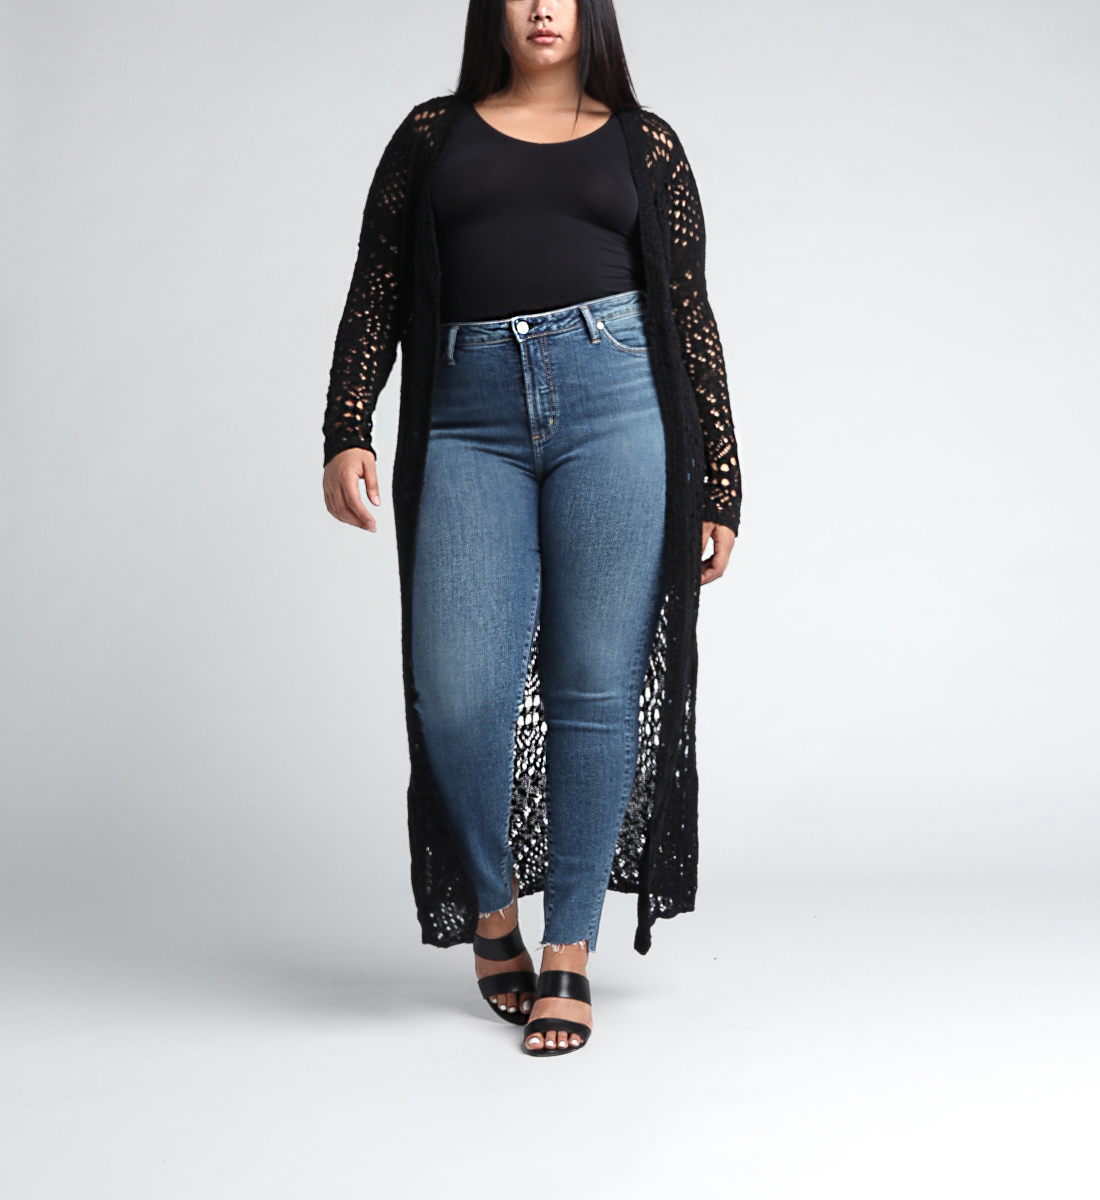 Abby Long-Sleeve Crochet Duster, Black, hi-res